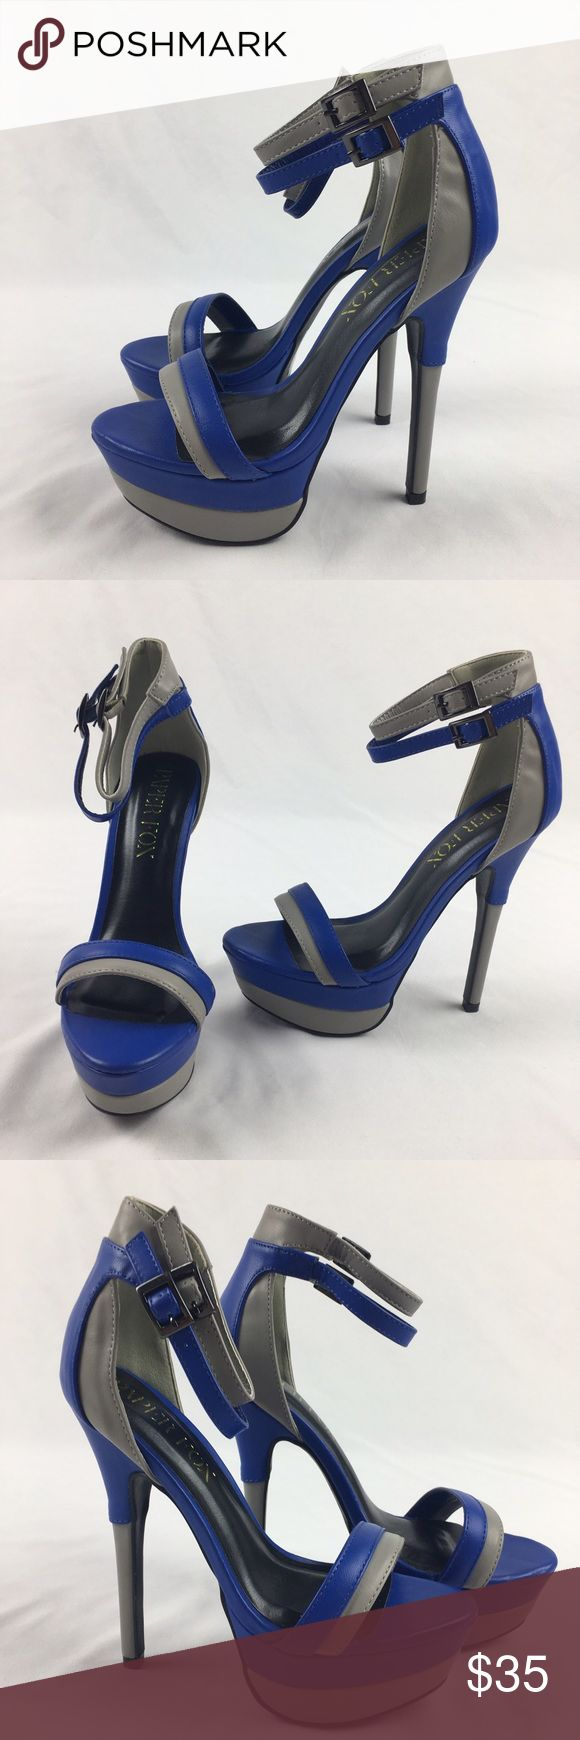 🎉sale🎉 New Paper Fox Nanine Blue Sandal Heels Gorgeous blue and gray sandal heels by Paper Fox. One small mark as pictured. Size 7. 6 inch heel. New, never worn. ❗️❗️PRICE FIRM❗️❗️ Paper Fox Shoes Heels